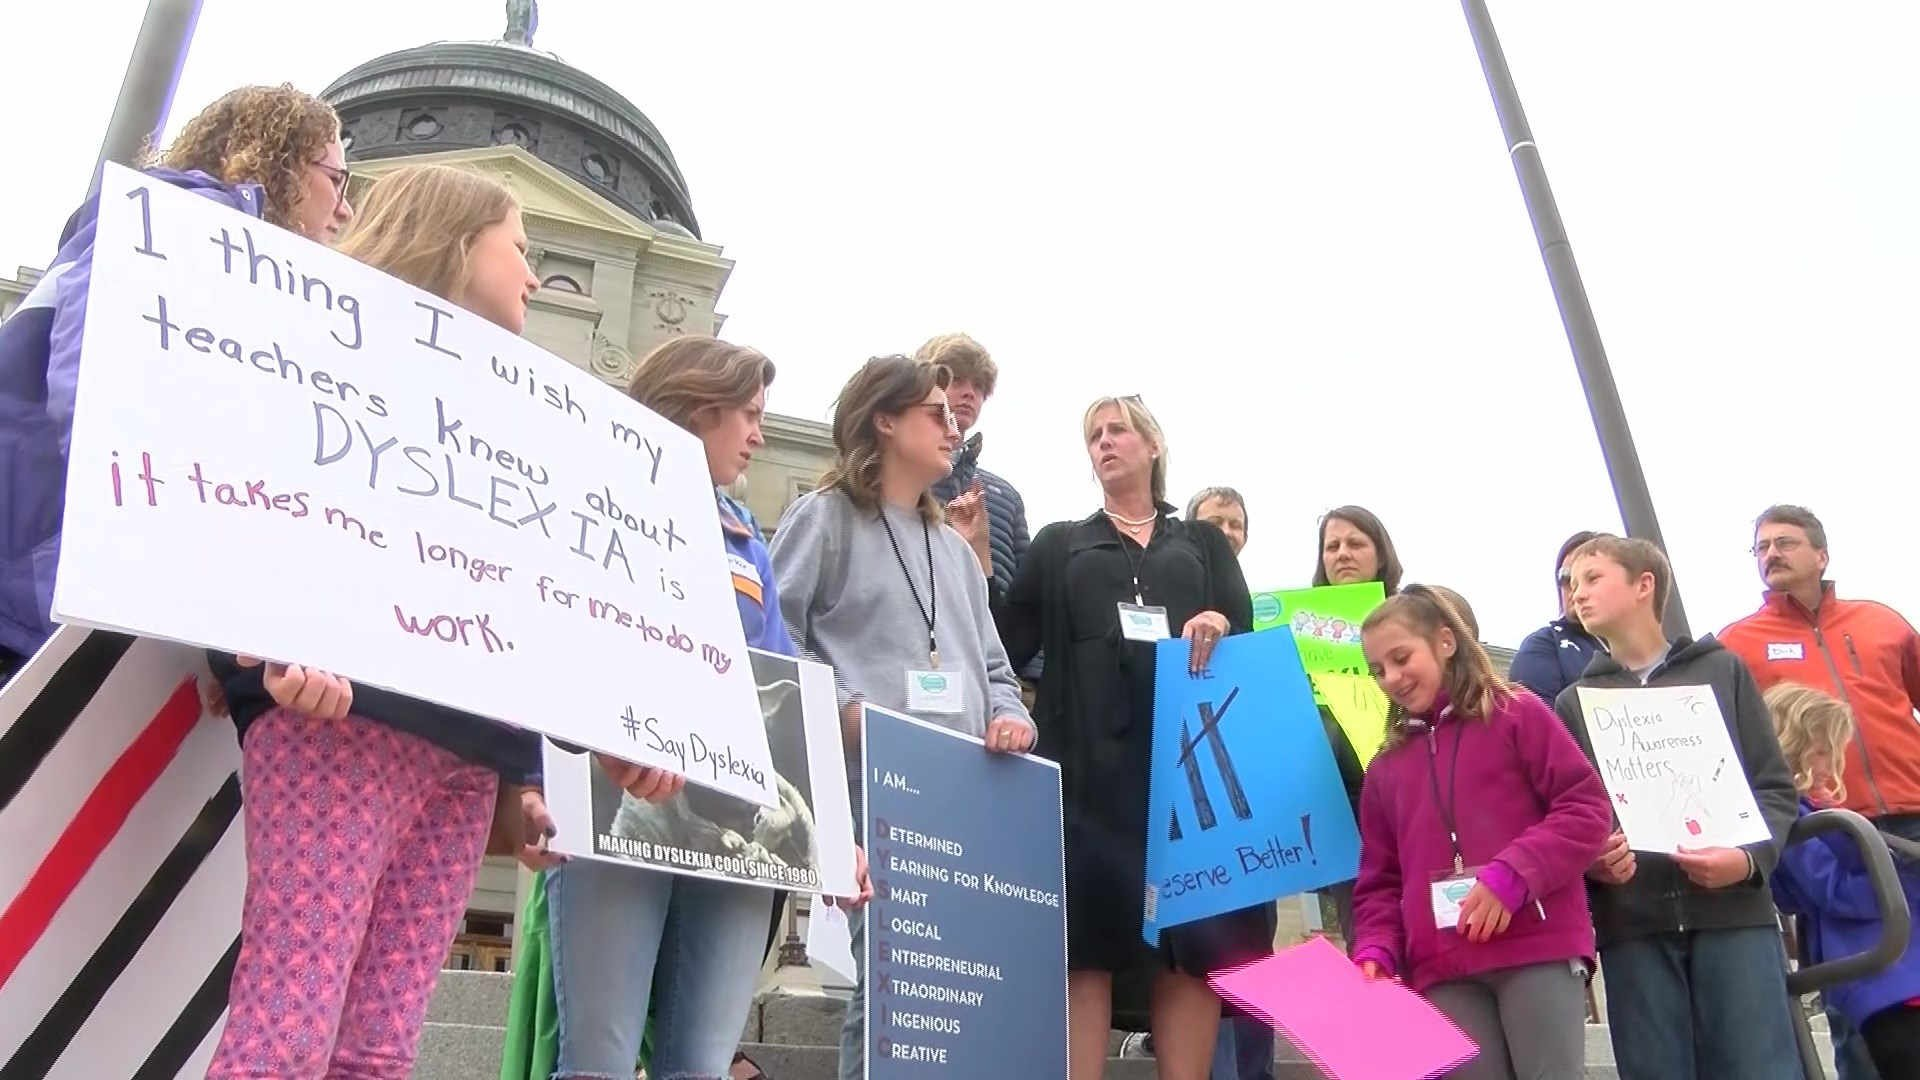 The activists carried signs showing their support for the dyslexia community. (MTN News photo)